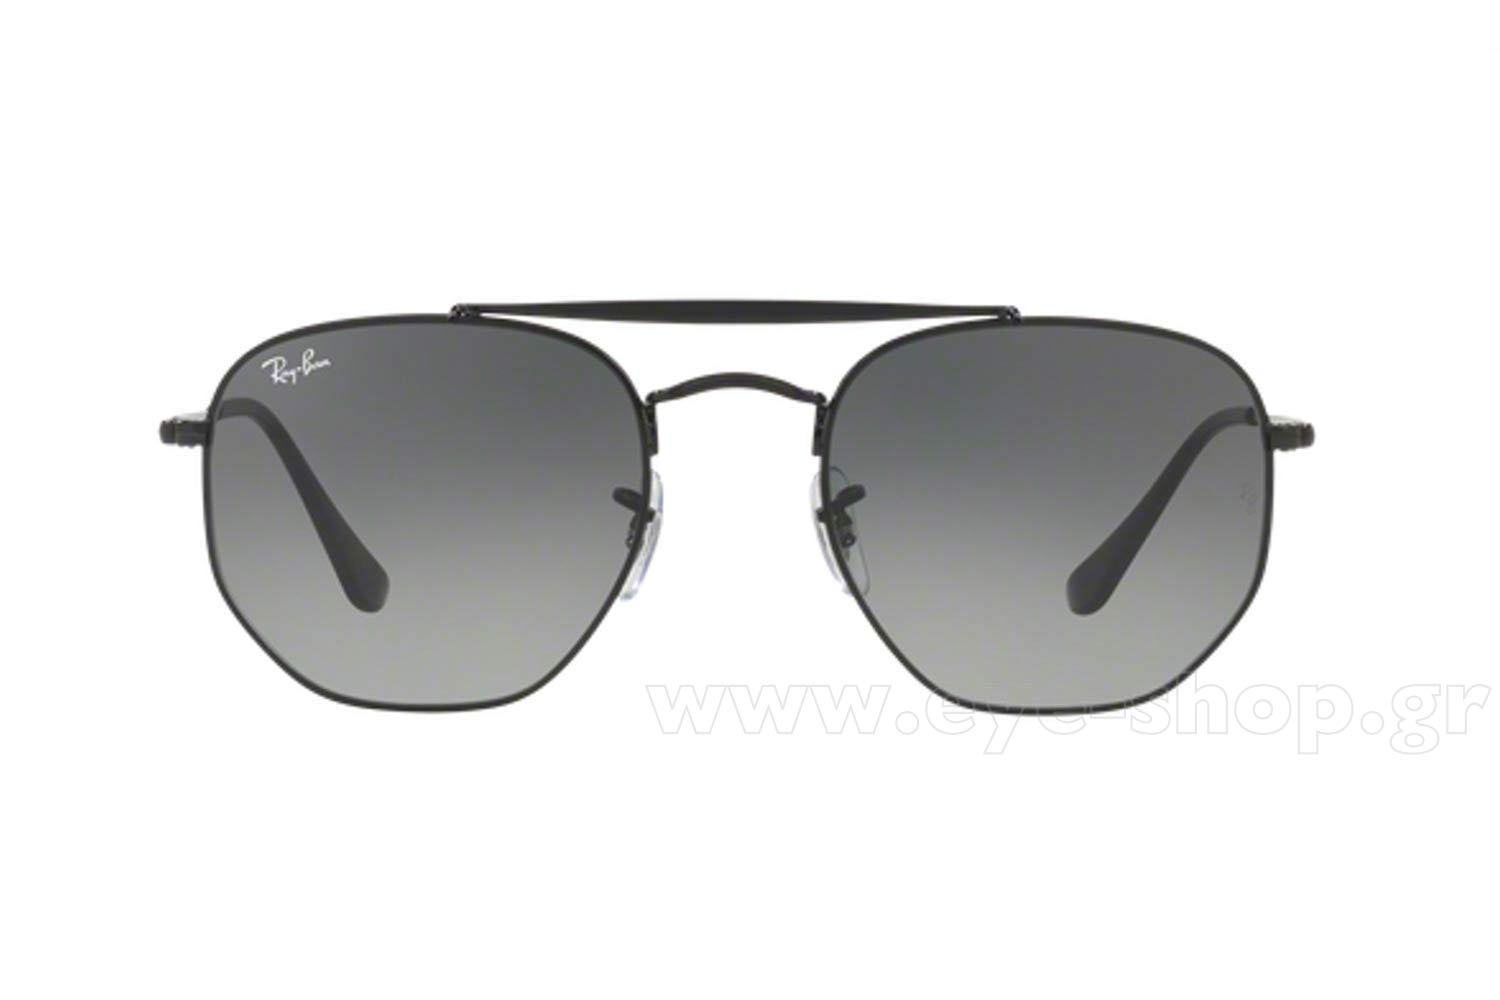 0c79fcb2db Men Sunglasses Rayban 3648 THE MARSHAL 002 71 Hexagonal Double Bridge -  size 54